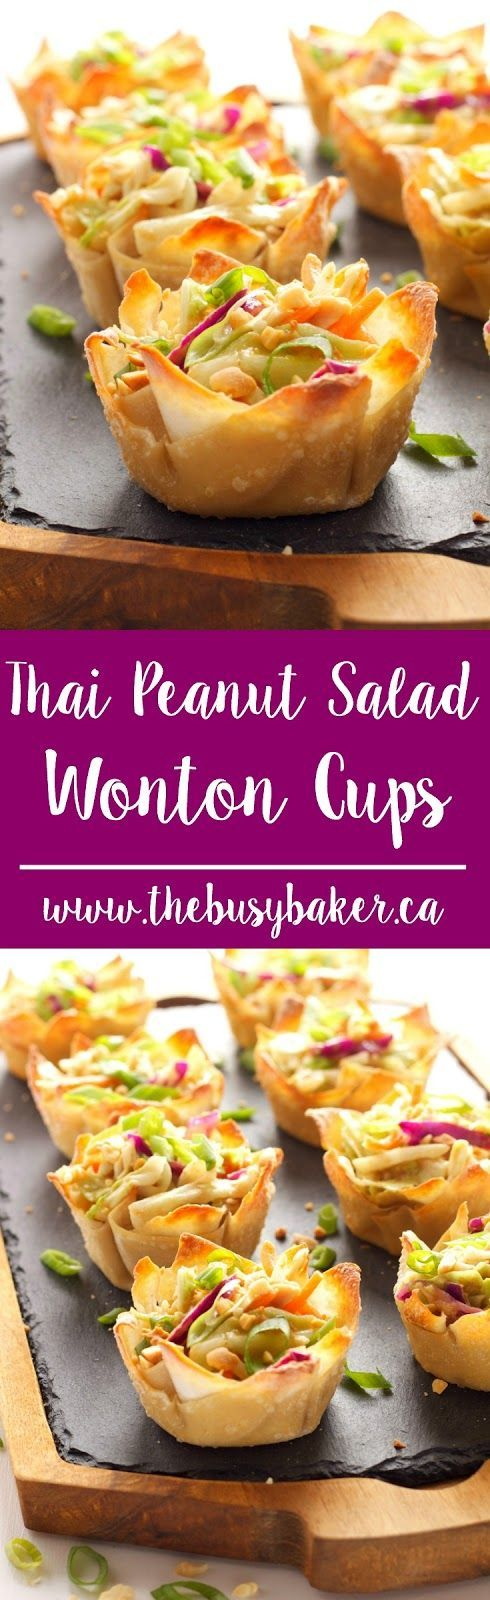 Thai Peanut Salad Wonton Cups www.thebusybaker.ca: http://www.thebusybaker.ca2016/09/thai-peanut-salad-cups.html?utm_content=bufferee0a7&utm_medium=social&utm_source=pinterest.com&utm_campaign=buffer